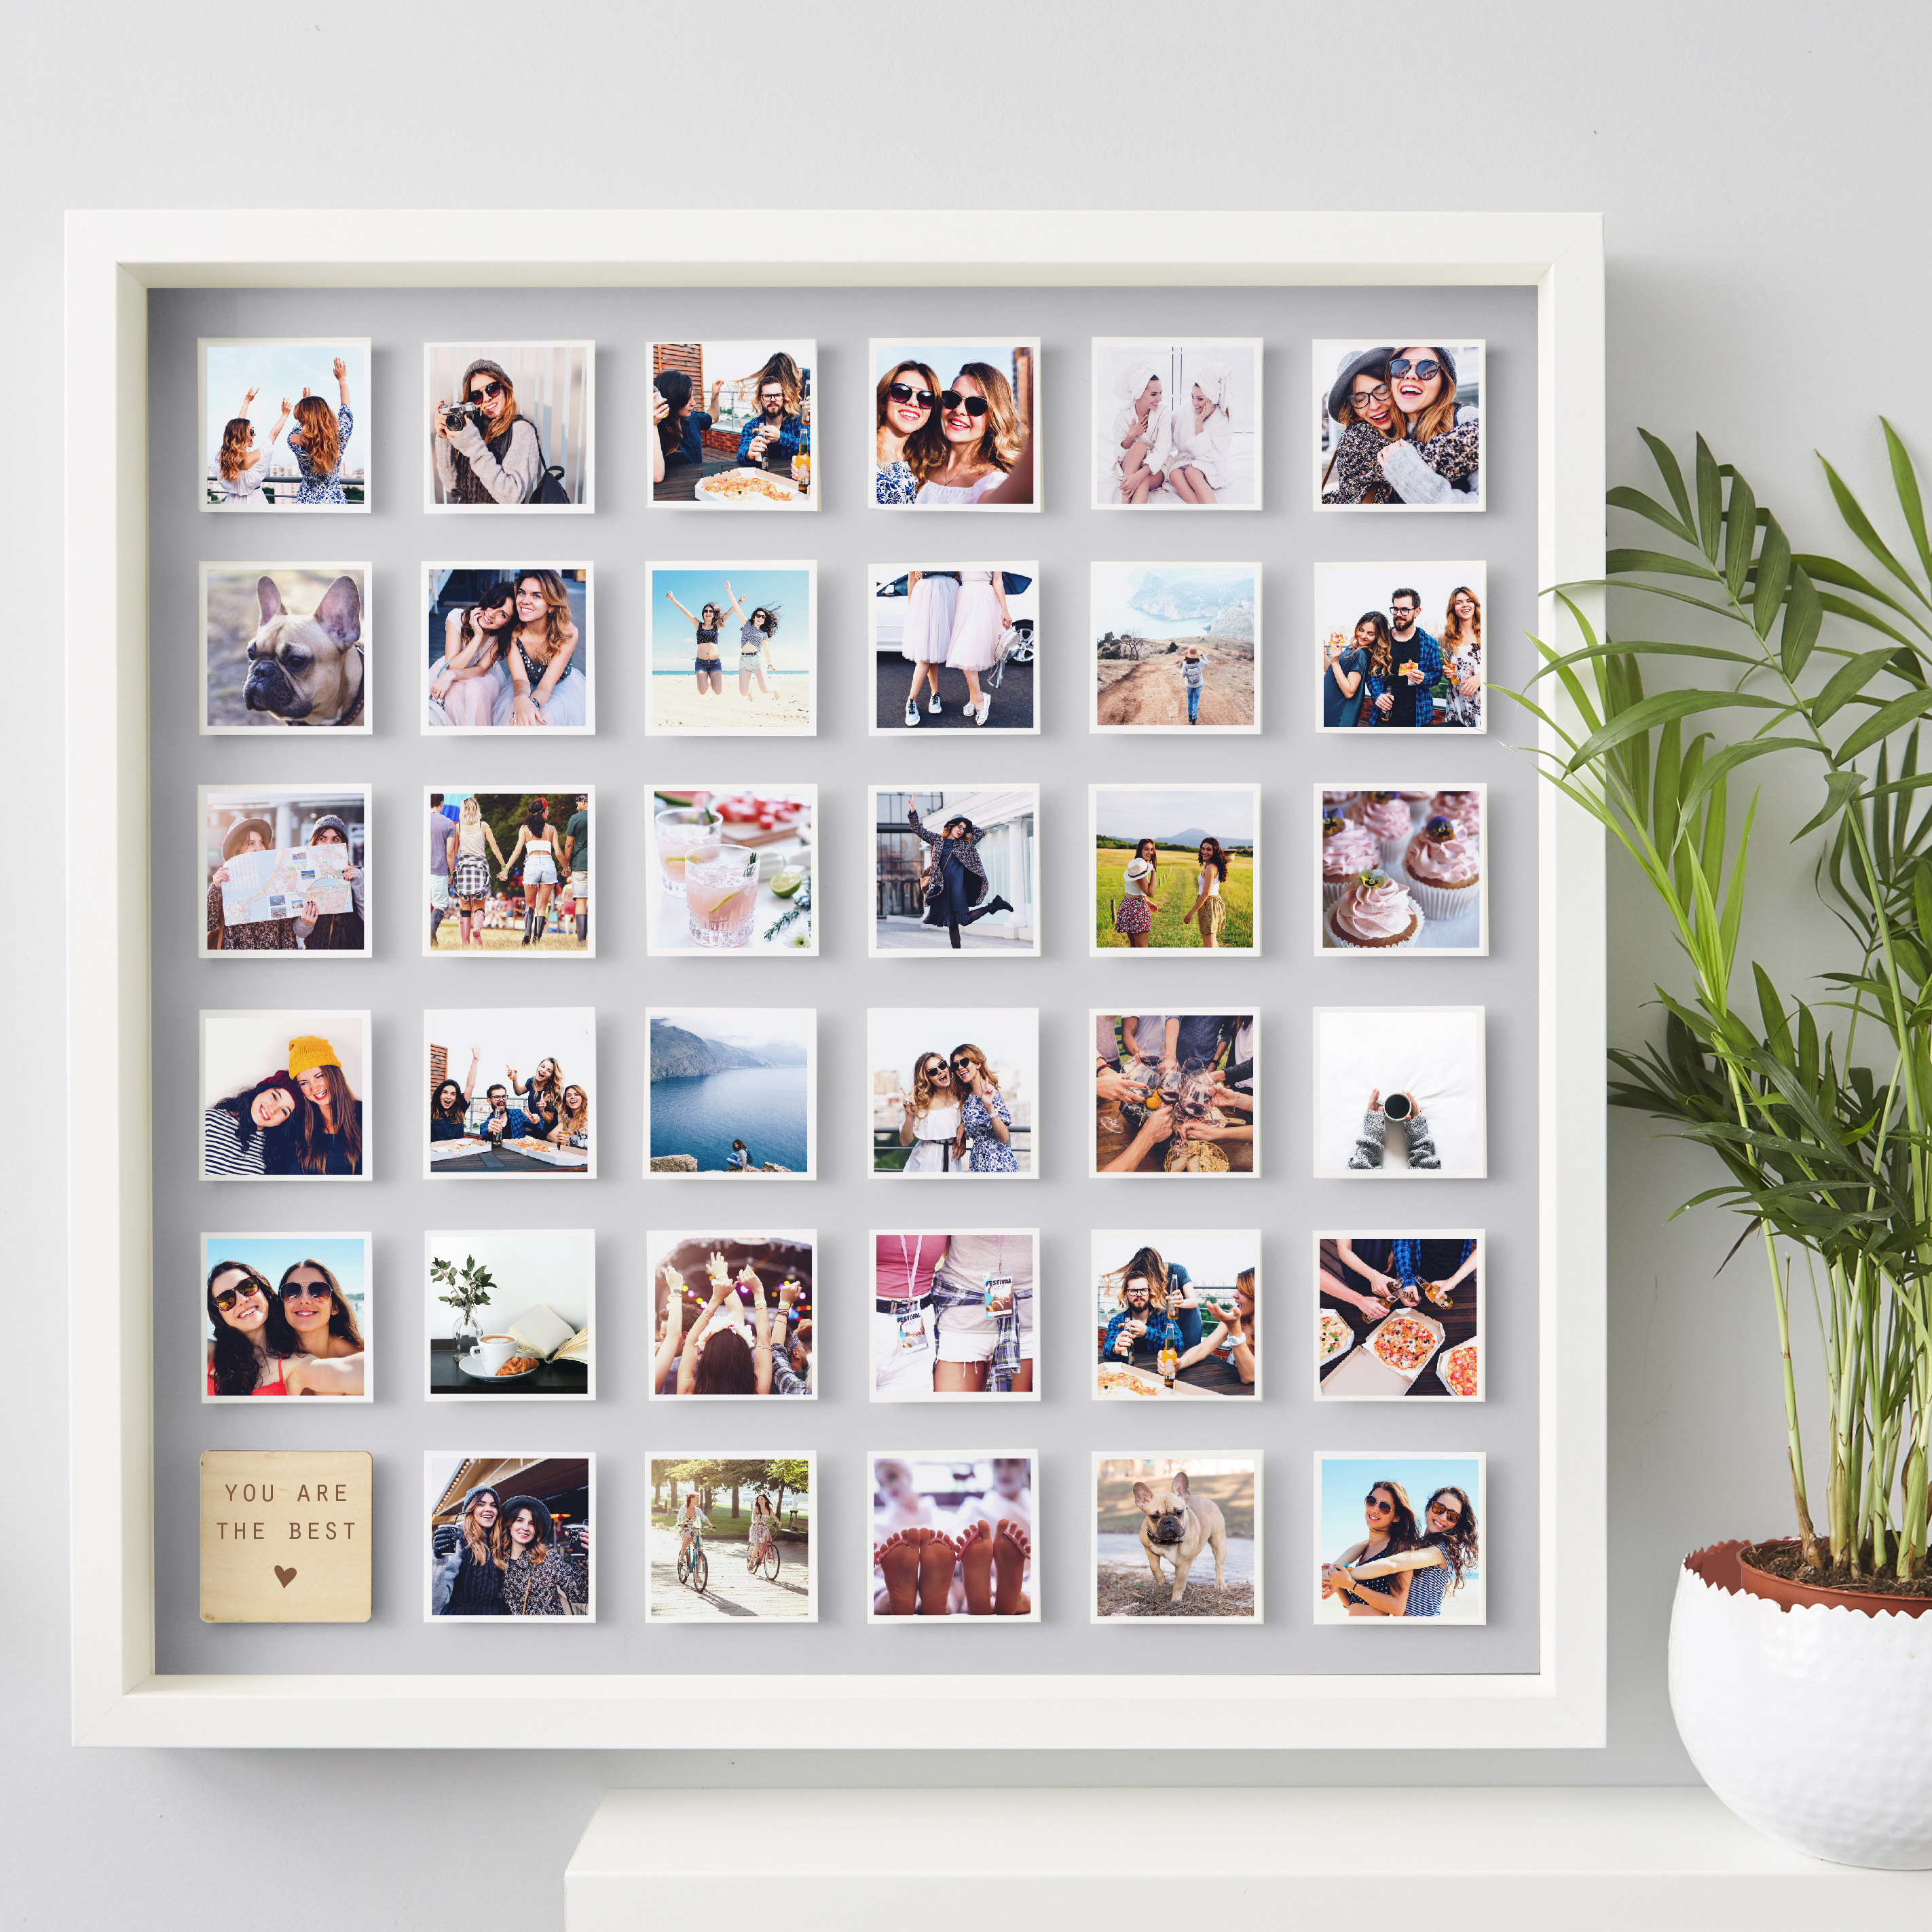 In the frame how to create a wonderwall with pictures irish personalised best friend framed print from 48 notonthehighstreet notonthehighstreetpa jeuxipadfo Choice Image